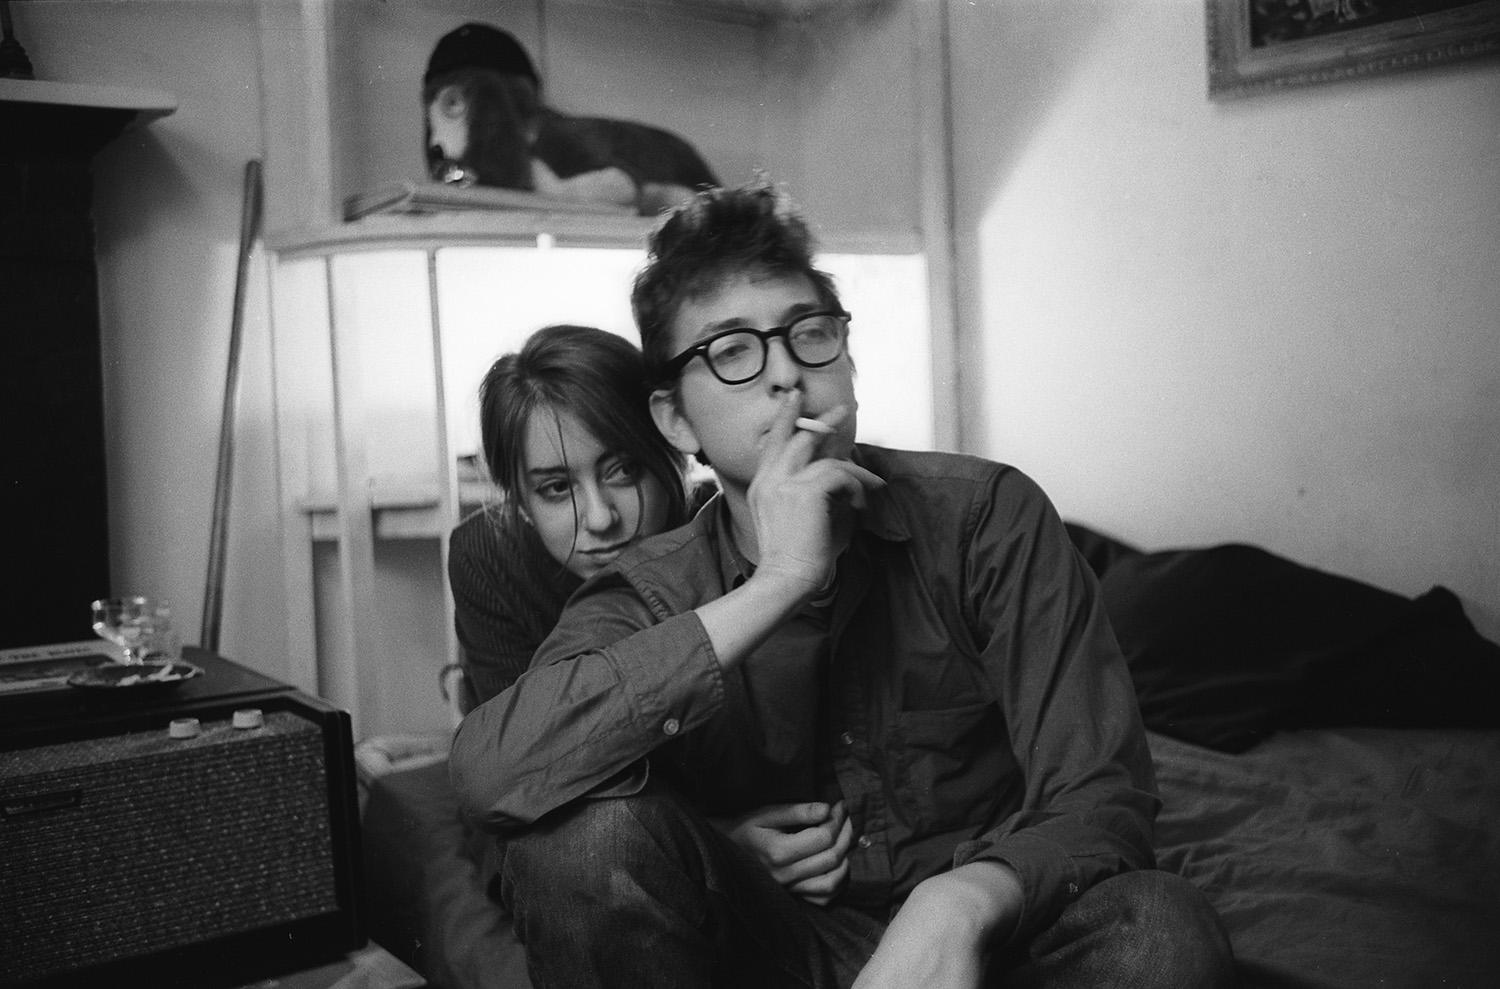 <p>Bob Dylan and Suze Rotolo, 161 W 4th St., New York, NY, 1961. (Photo: Ted Russell/Polaris/Steven Kasher Gallery) </p>